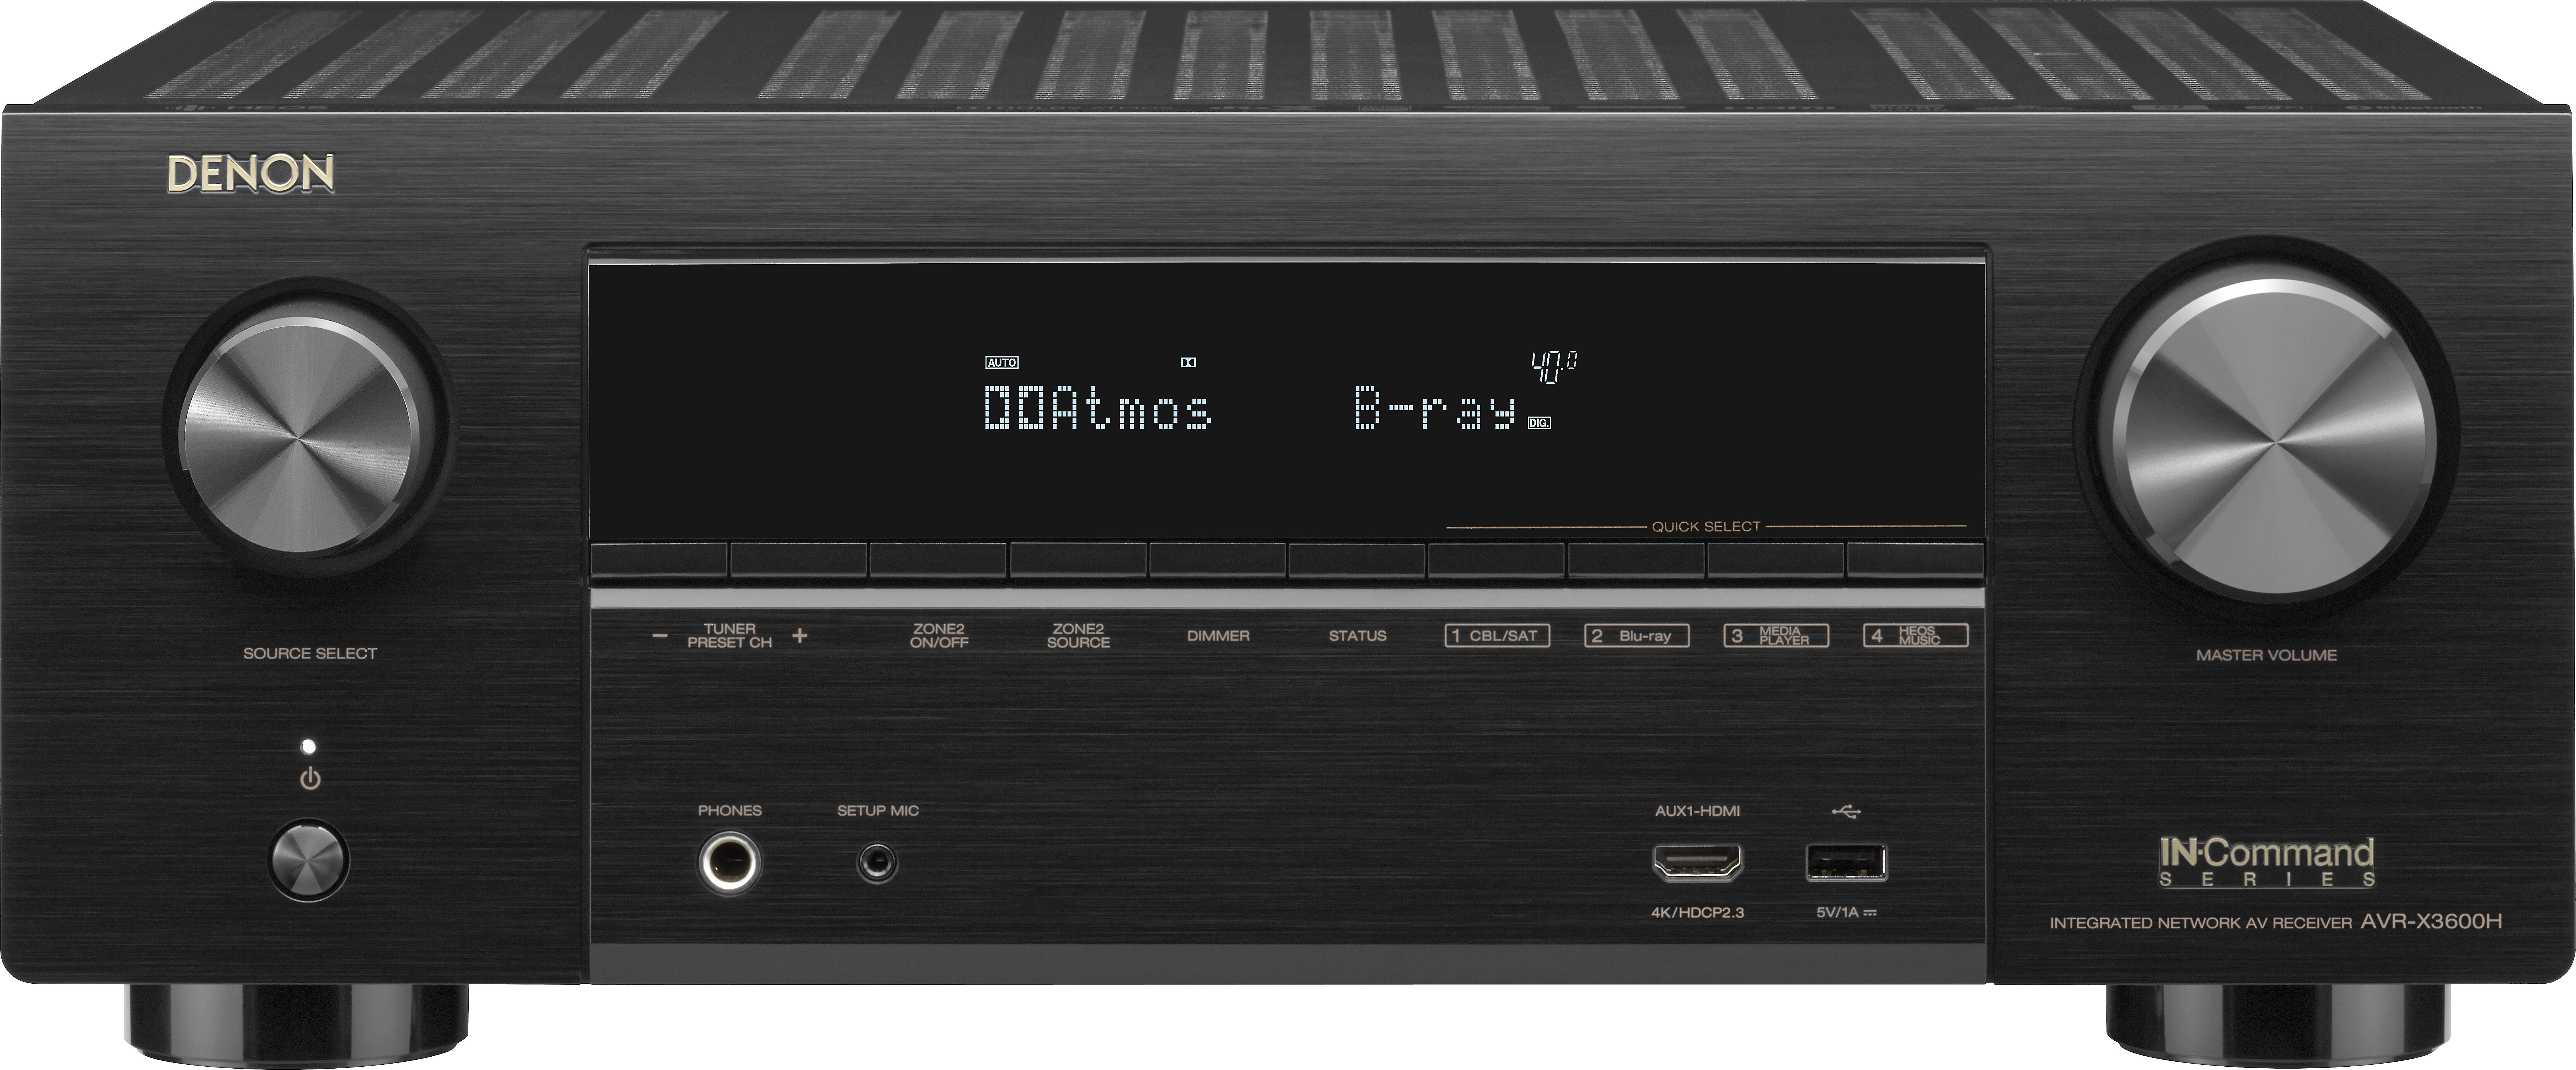 Denon AVR X3600H (2019 model) 9.2 channel home theater receiver with Wi Fi®, Bluetooth®, Apple® AirPlay® 2, and Amazon Alexa compatibility at